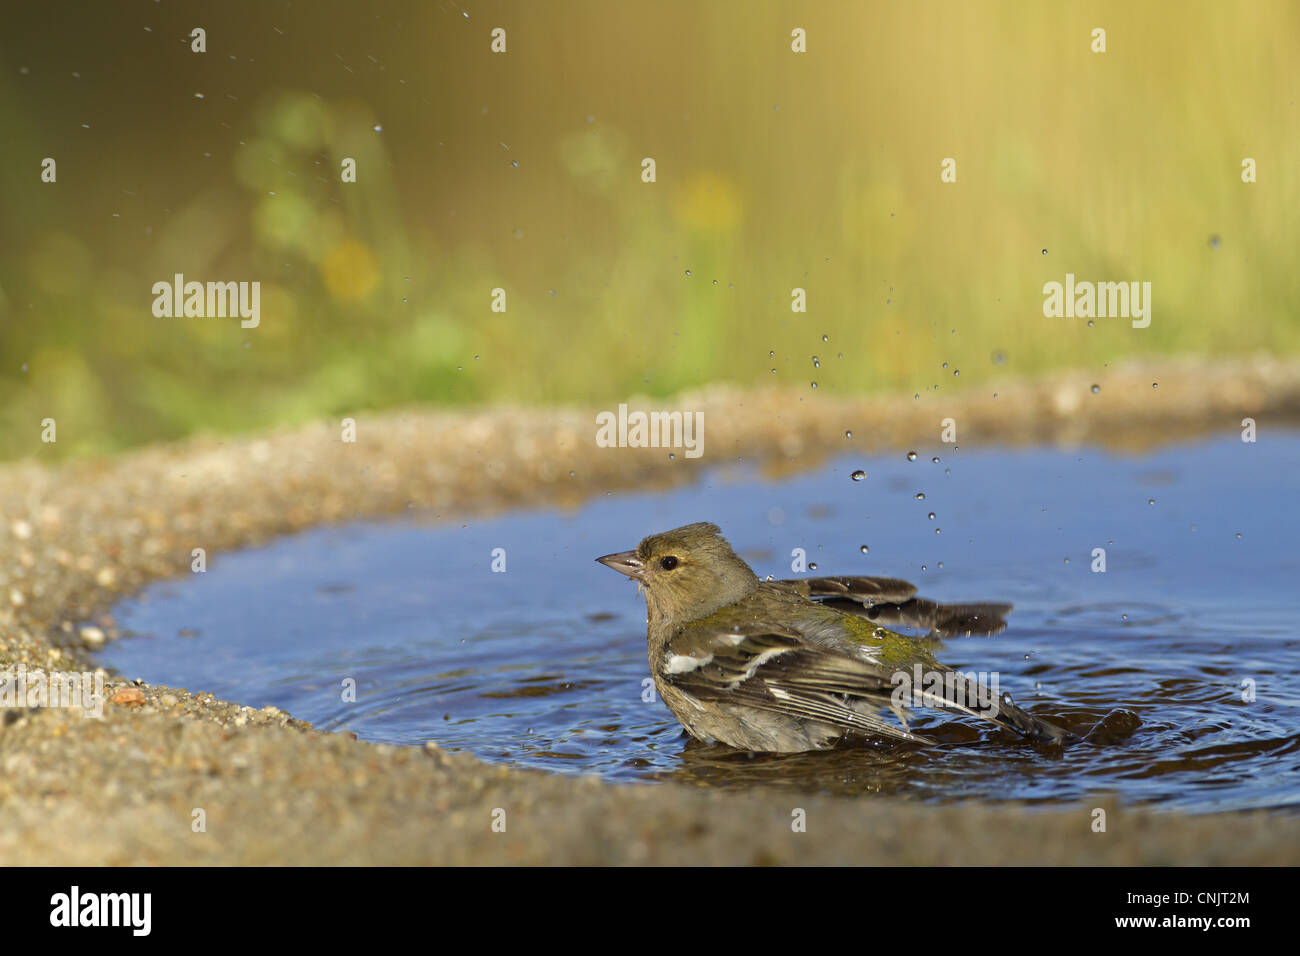 Chaffinch (Fringilla coelebs) adult female, bathing in pool, Spain, may - Stock Image